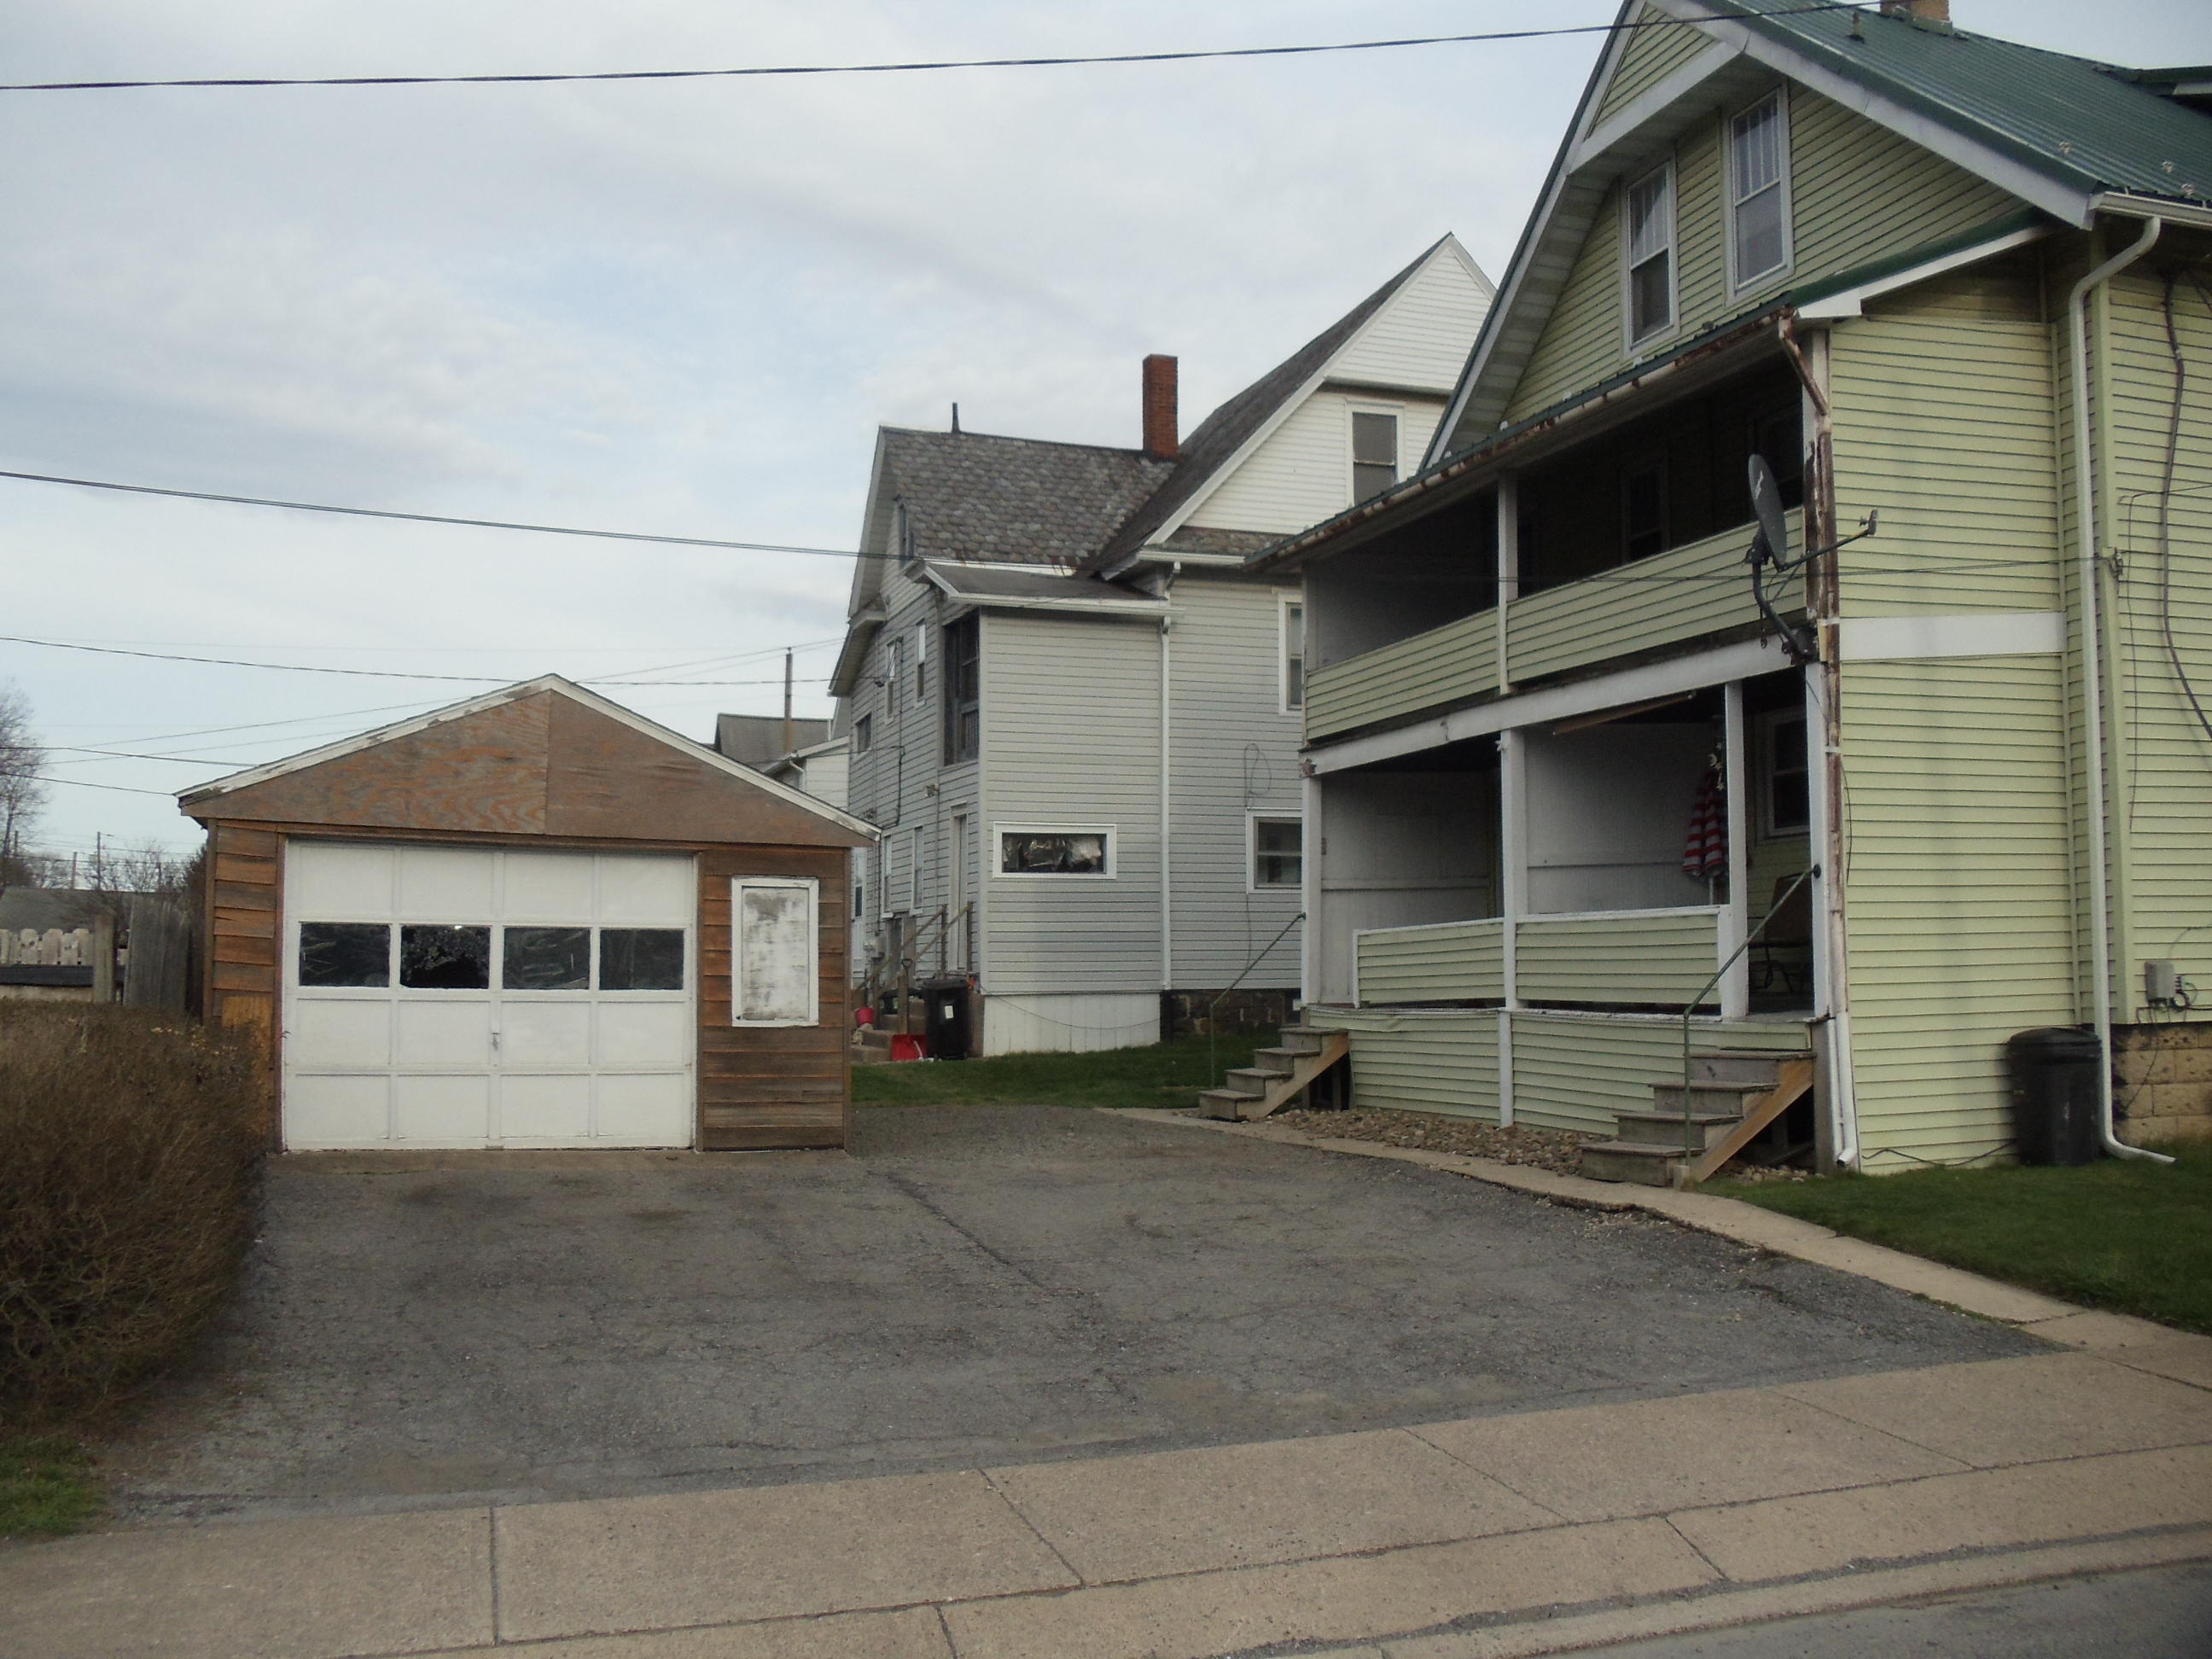 2260-2262 3RD STREET, Williamsport, PA 17701, ,Multi-units,For sale,3RD,WB-92260